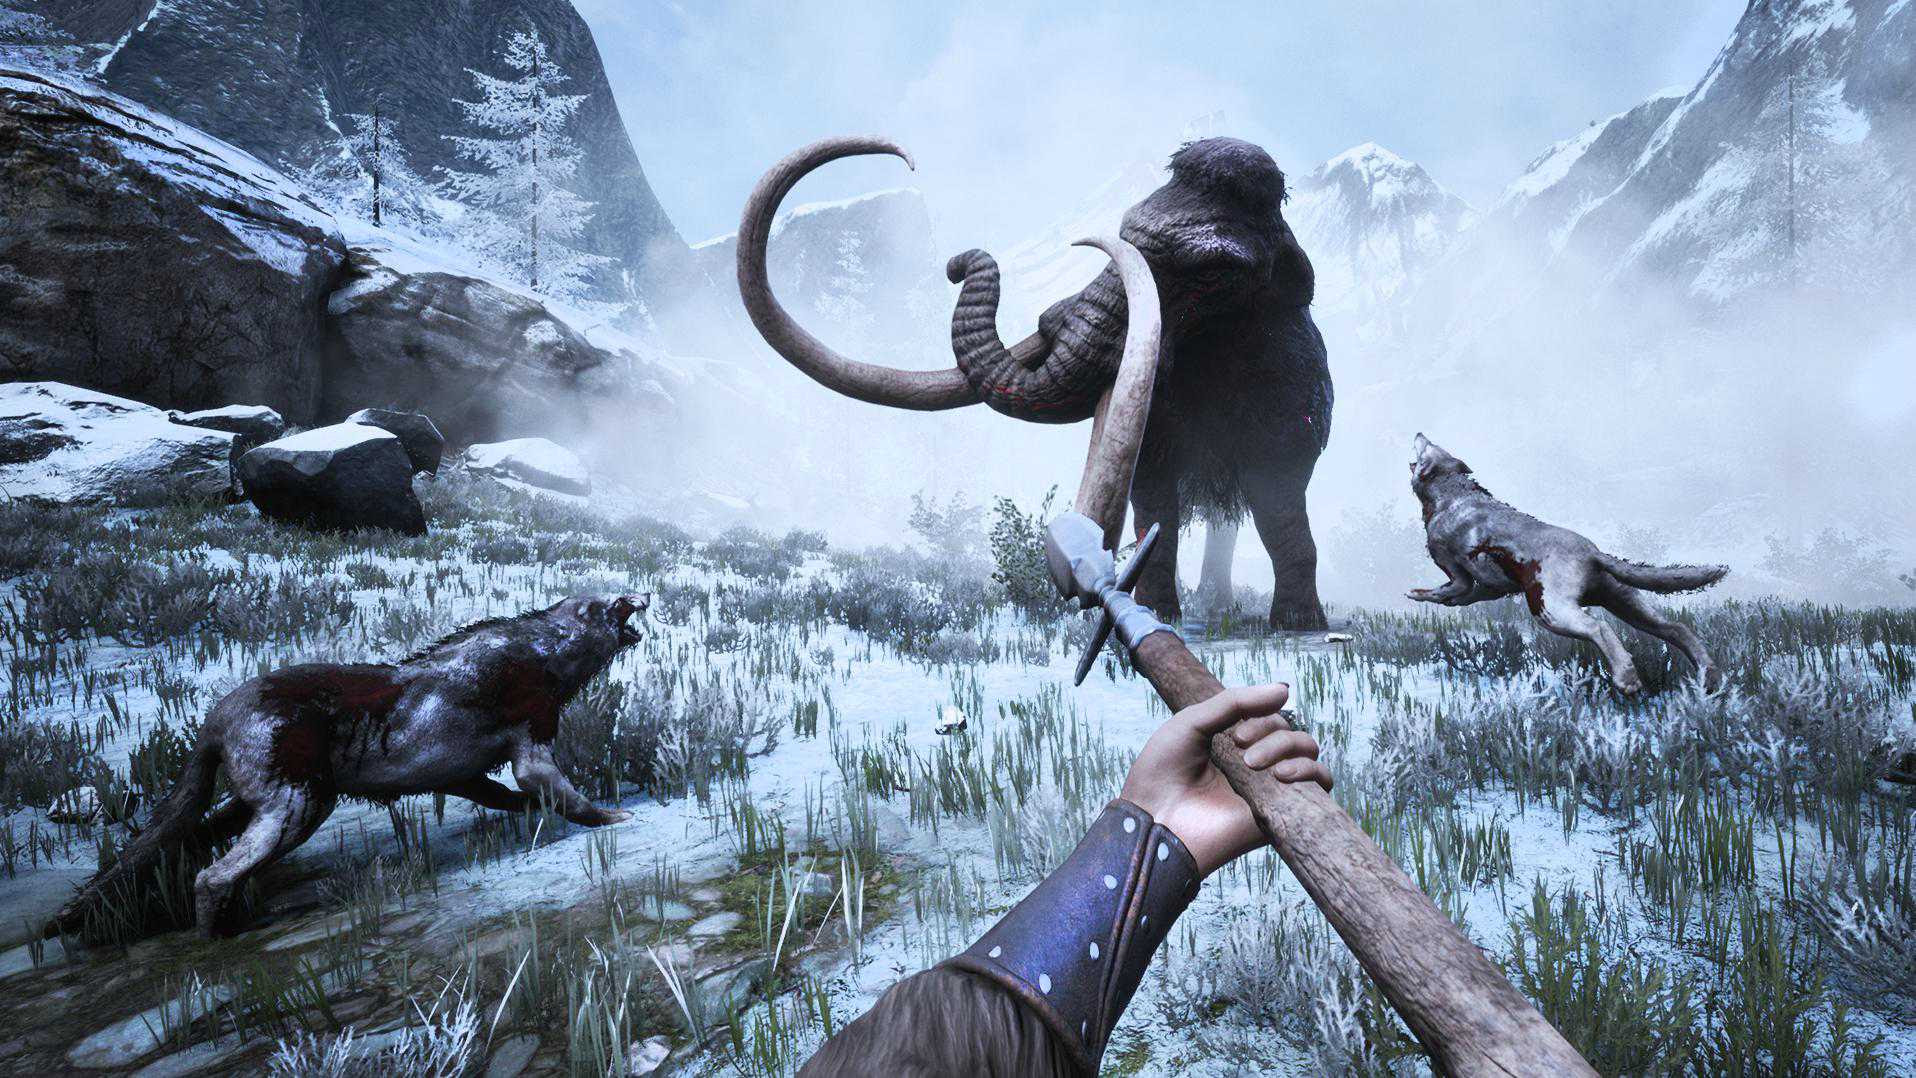 Conan Exiles Free Expansion The Frozen North Announced